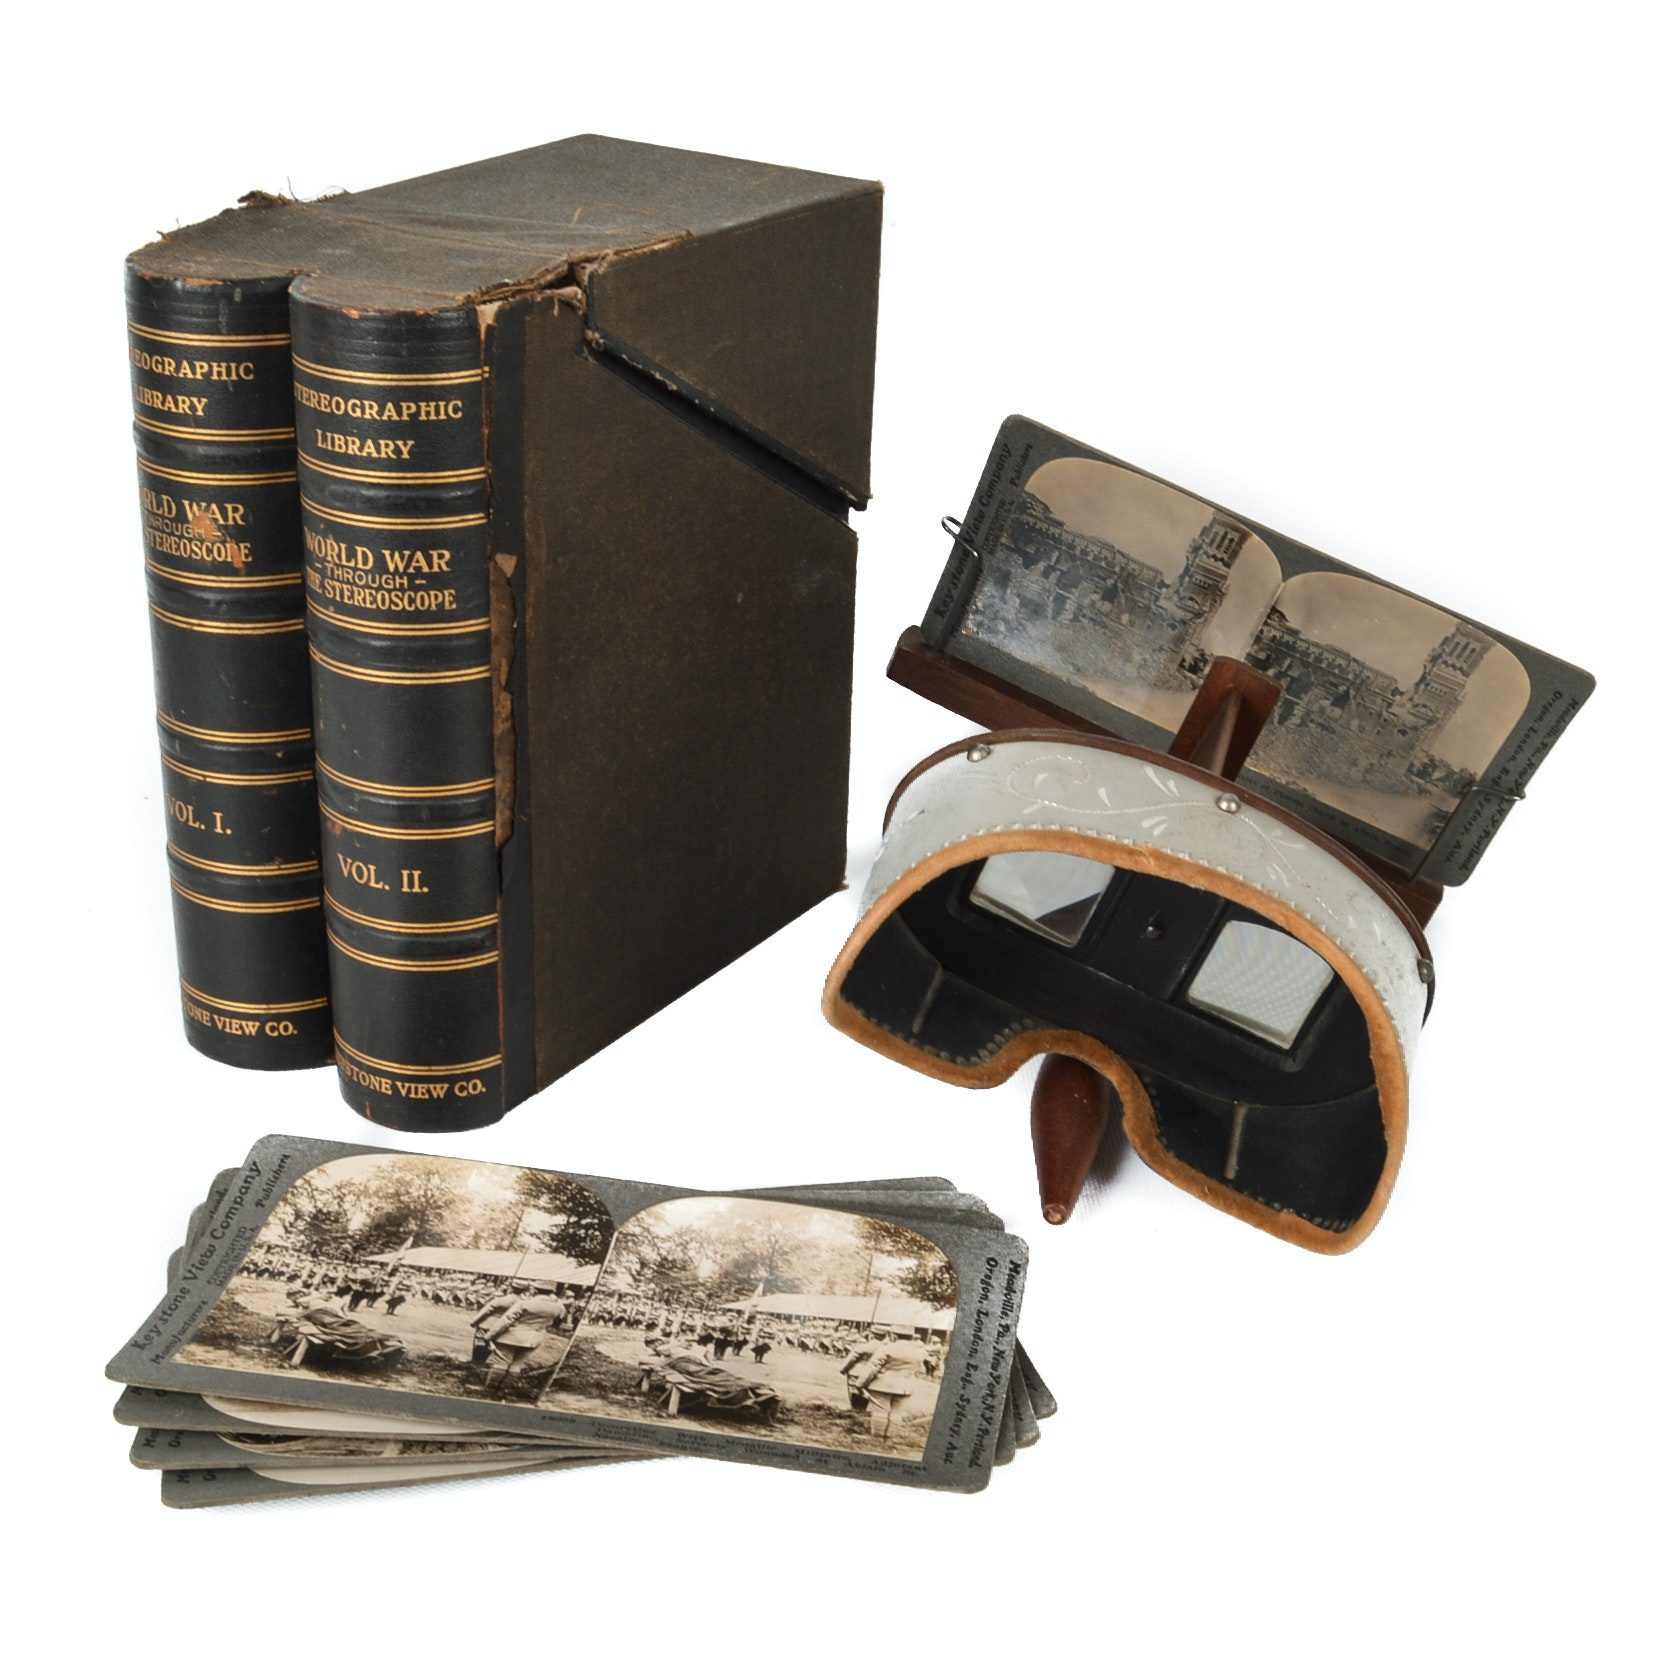 Antique Stereoscope and Stereographic Library